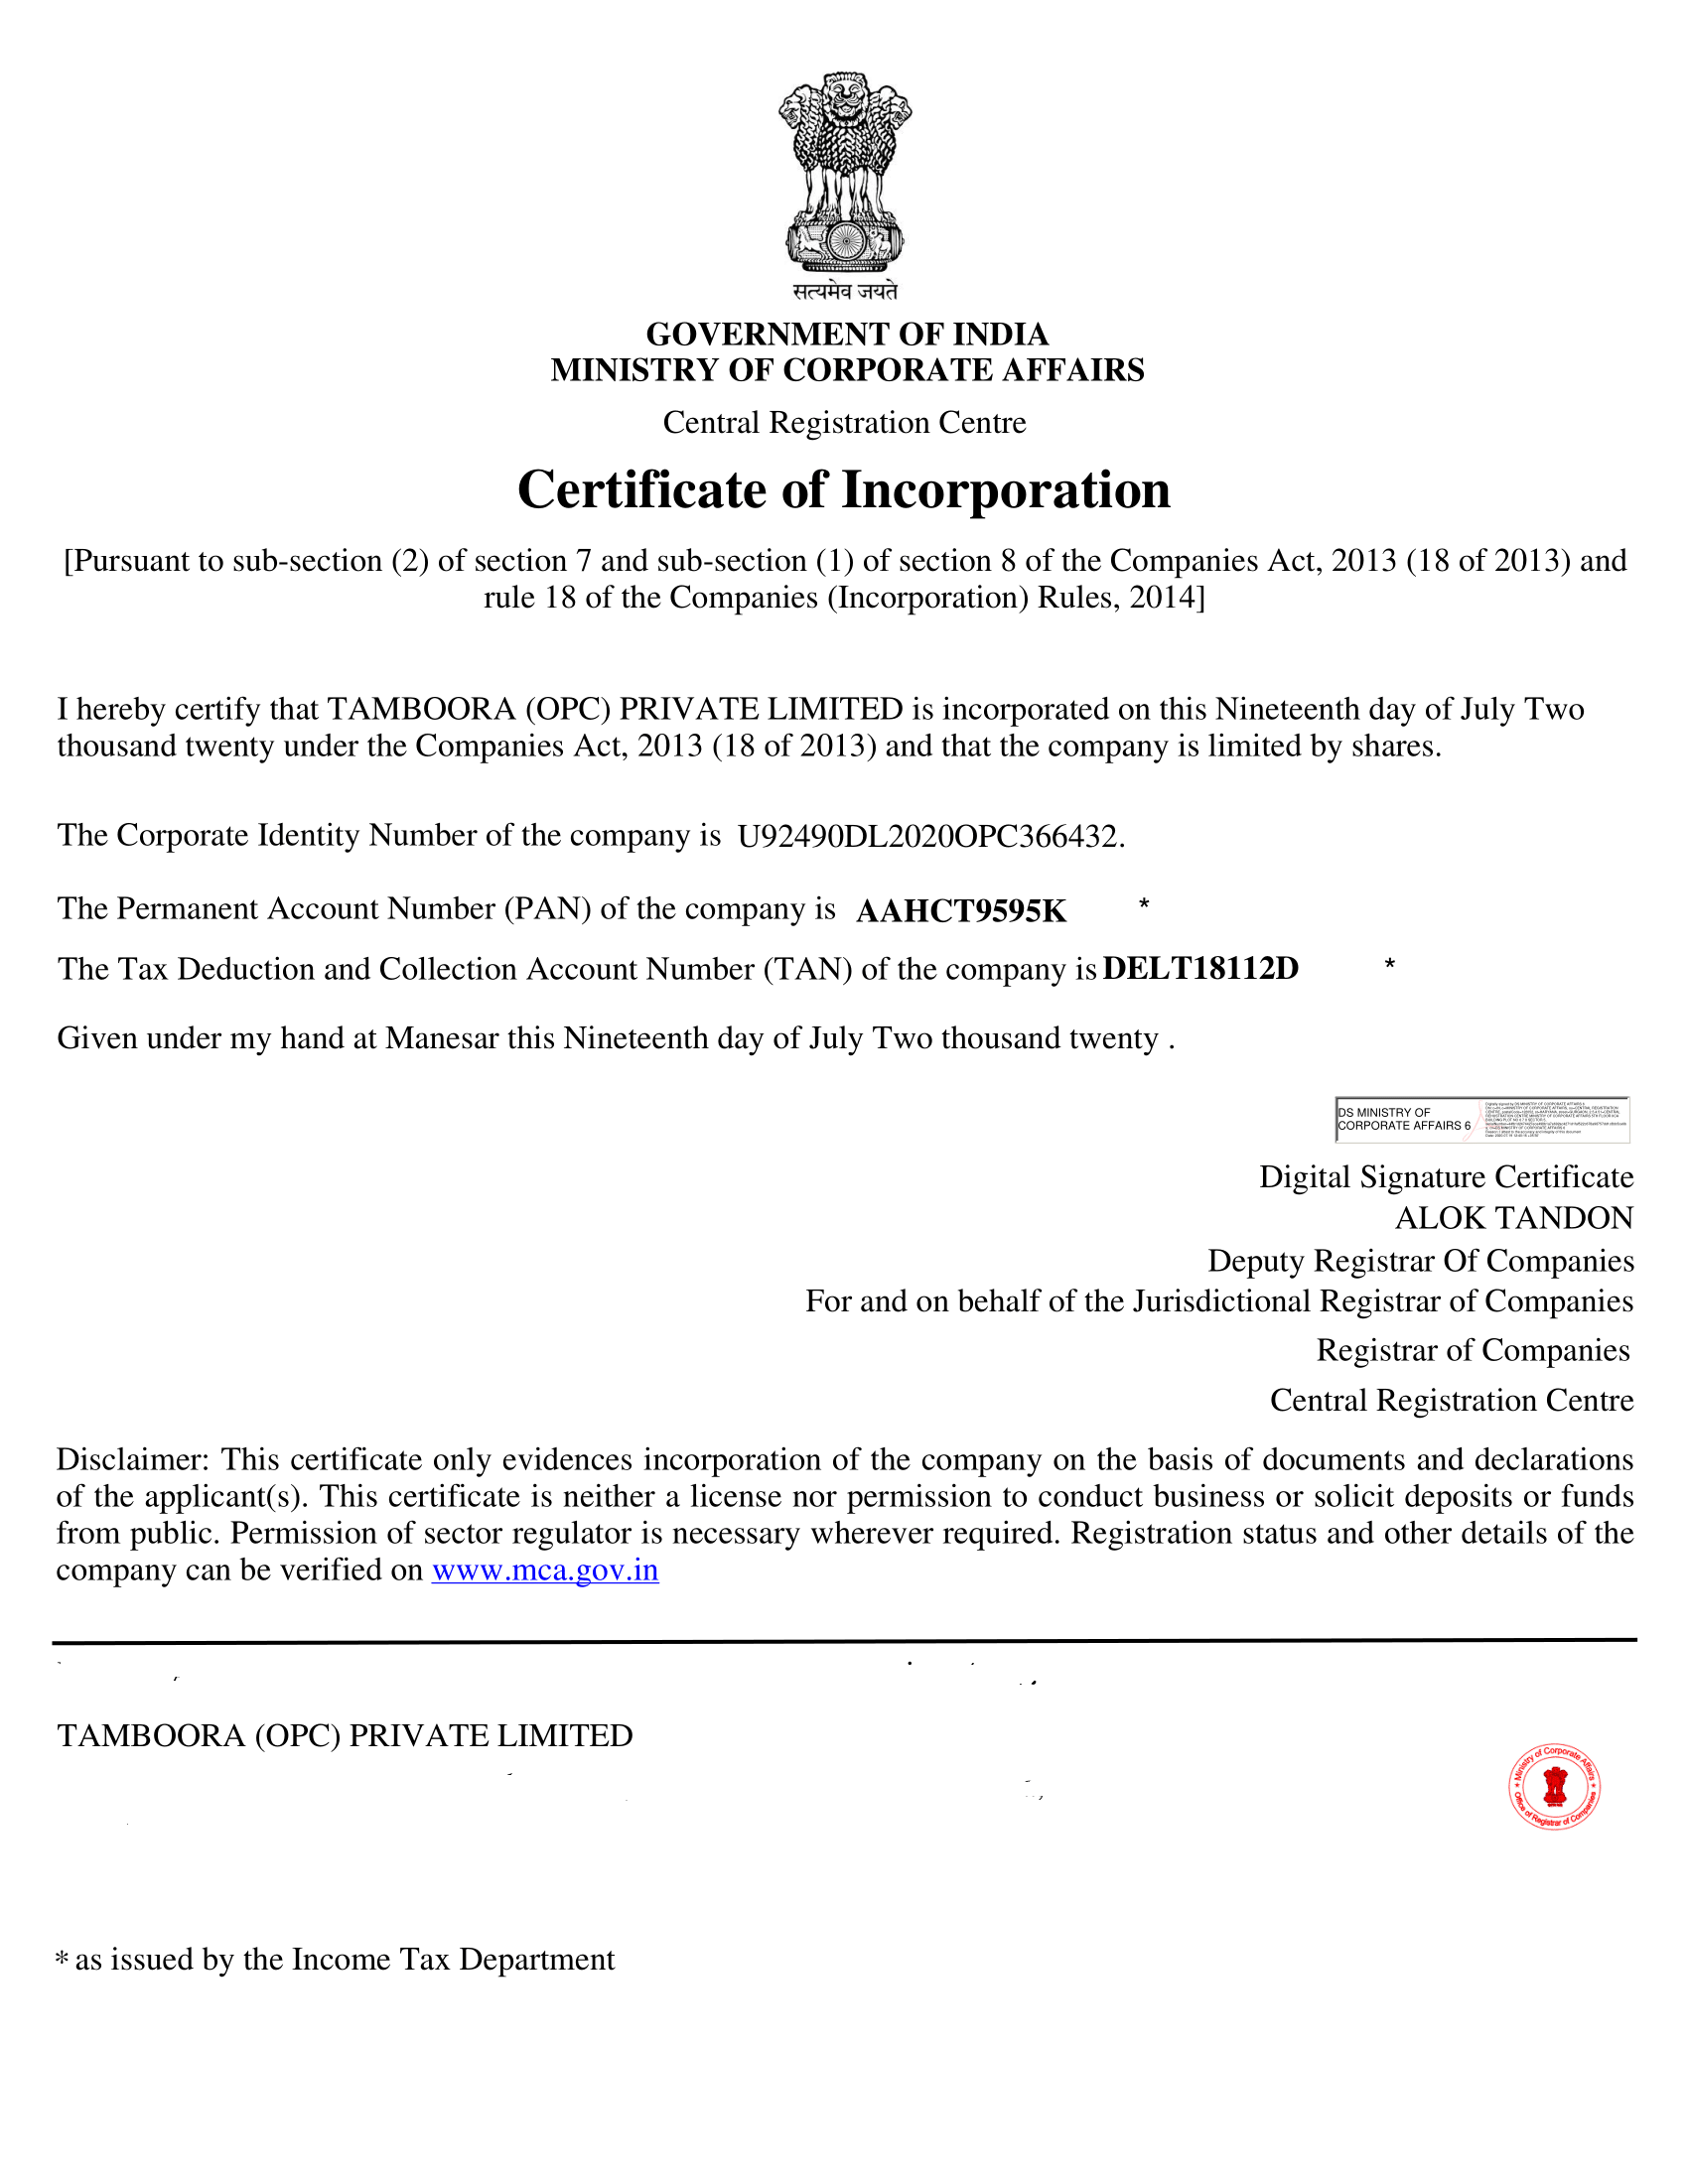 TAMBOORA - CERTIFICATE OF INCORPORATION